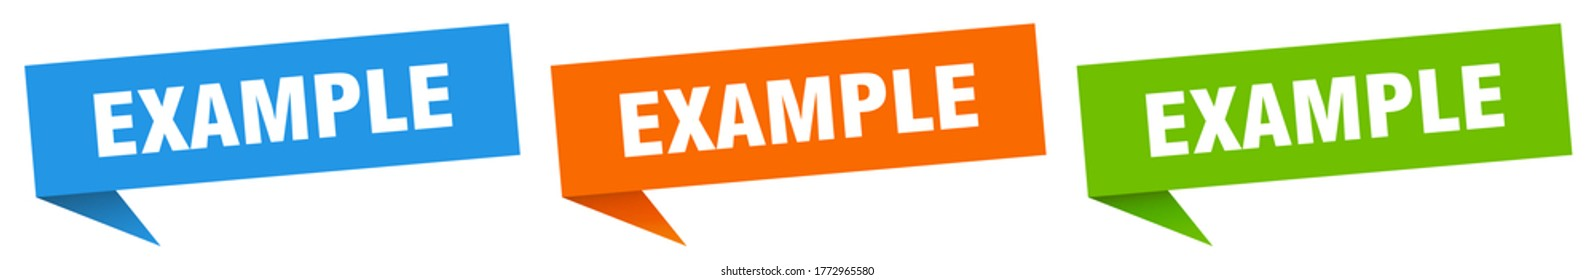 example banner. example speech bubble label set. example sign